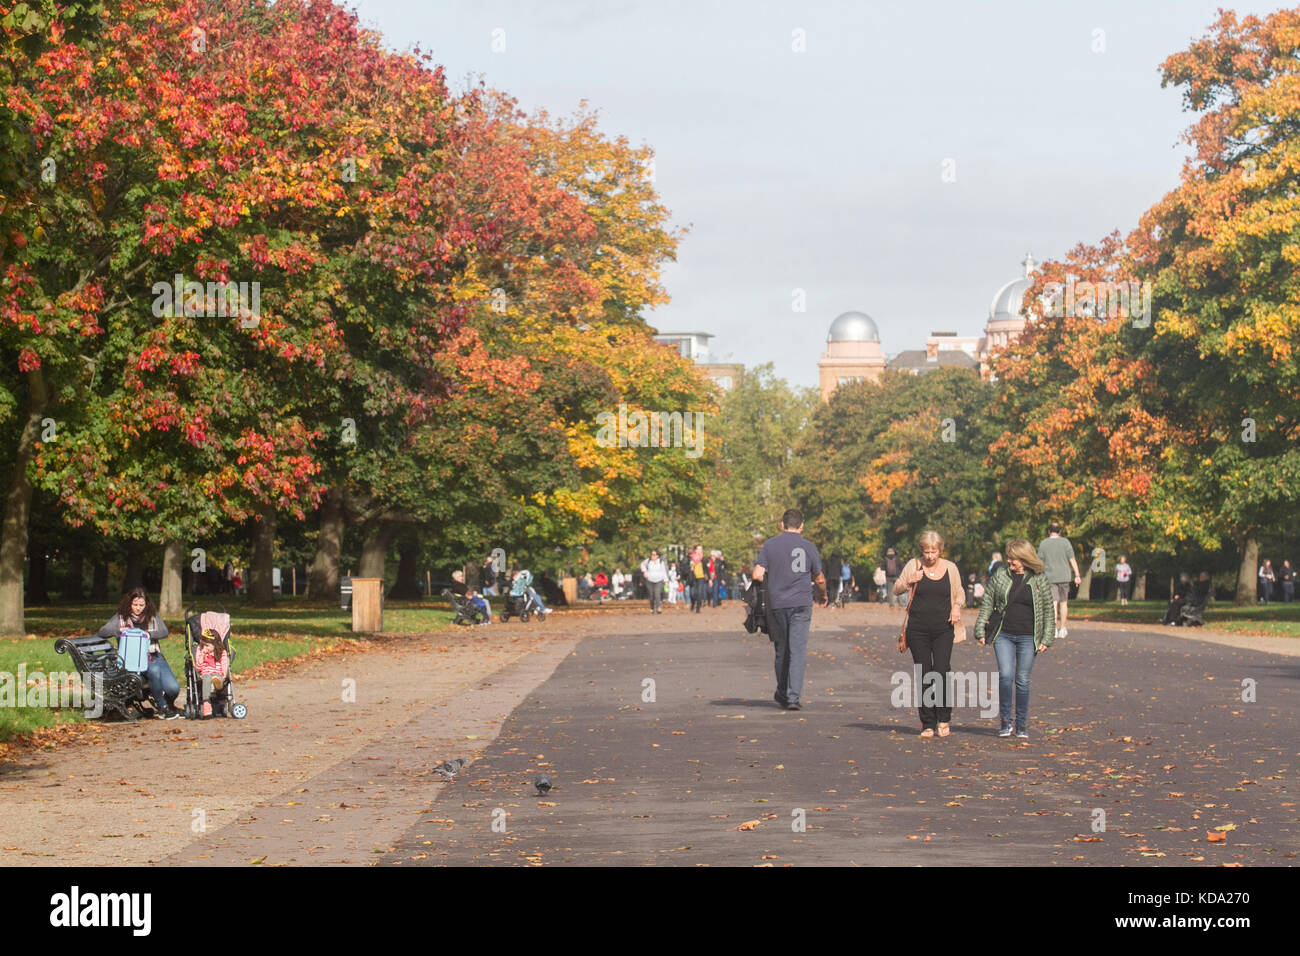 London, UK. 12th Oct, 2017. UK Weather: Londoners enjoy the glorious ...